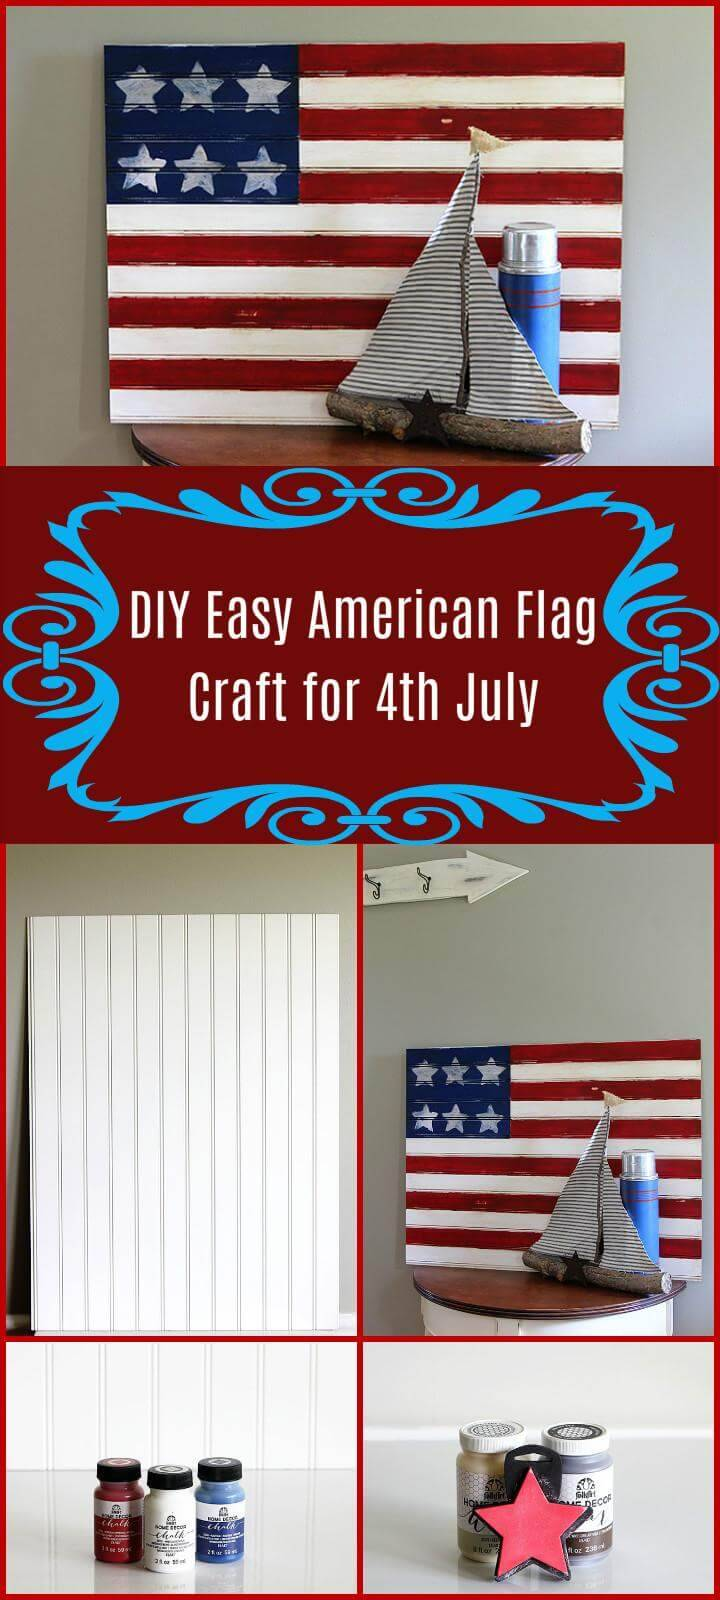 DIY Easy American flag craft for 4th July